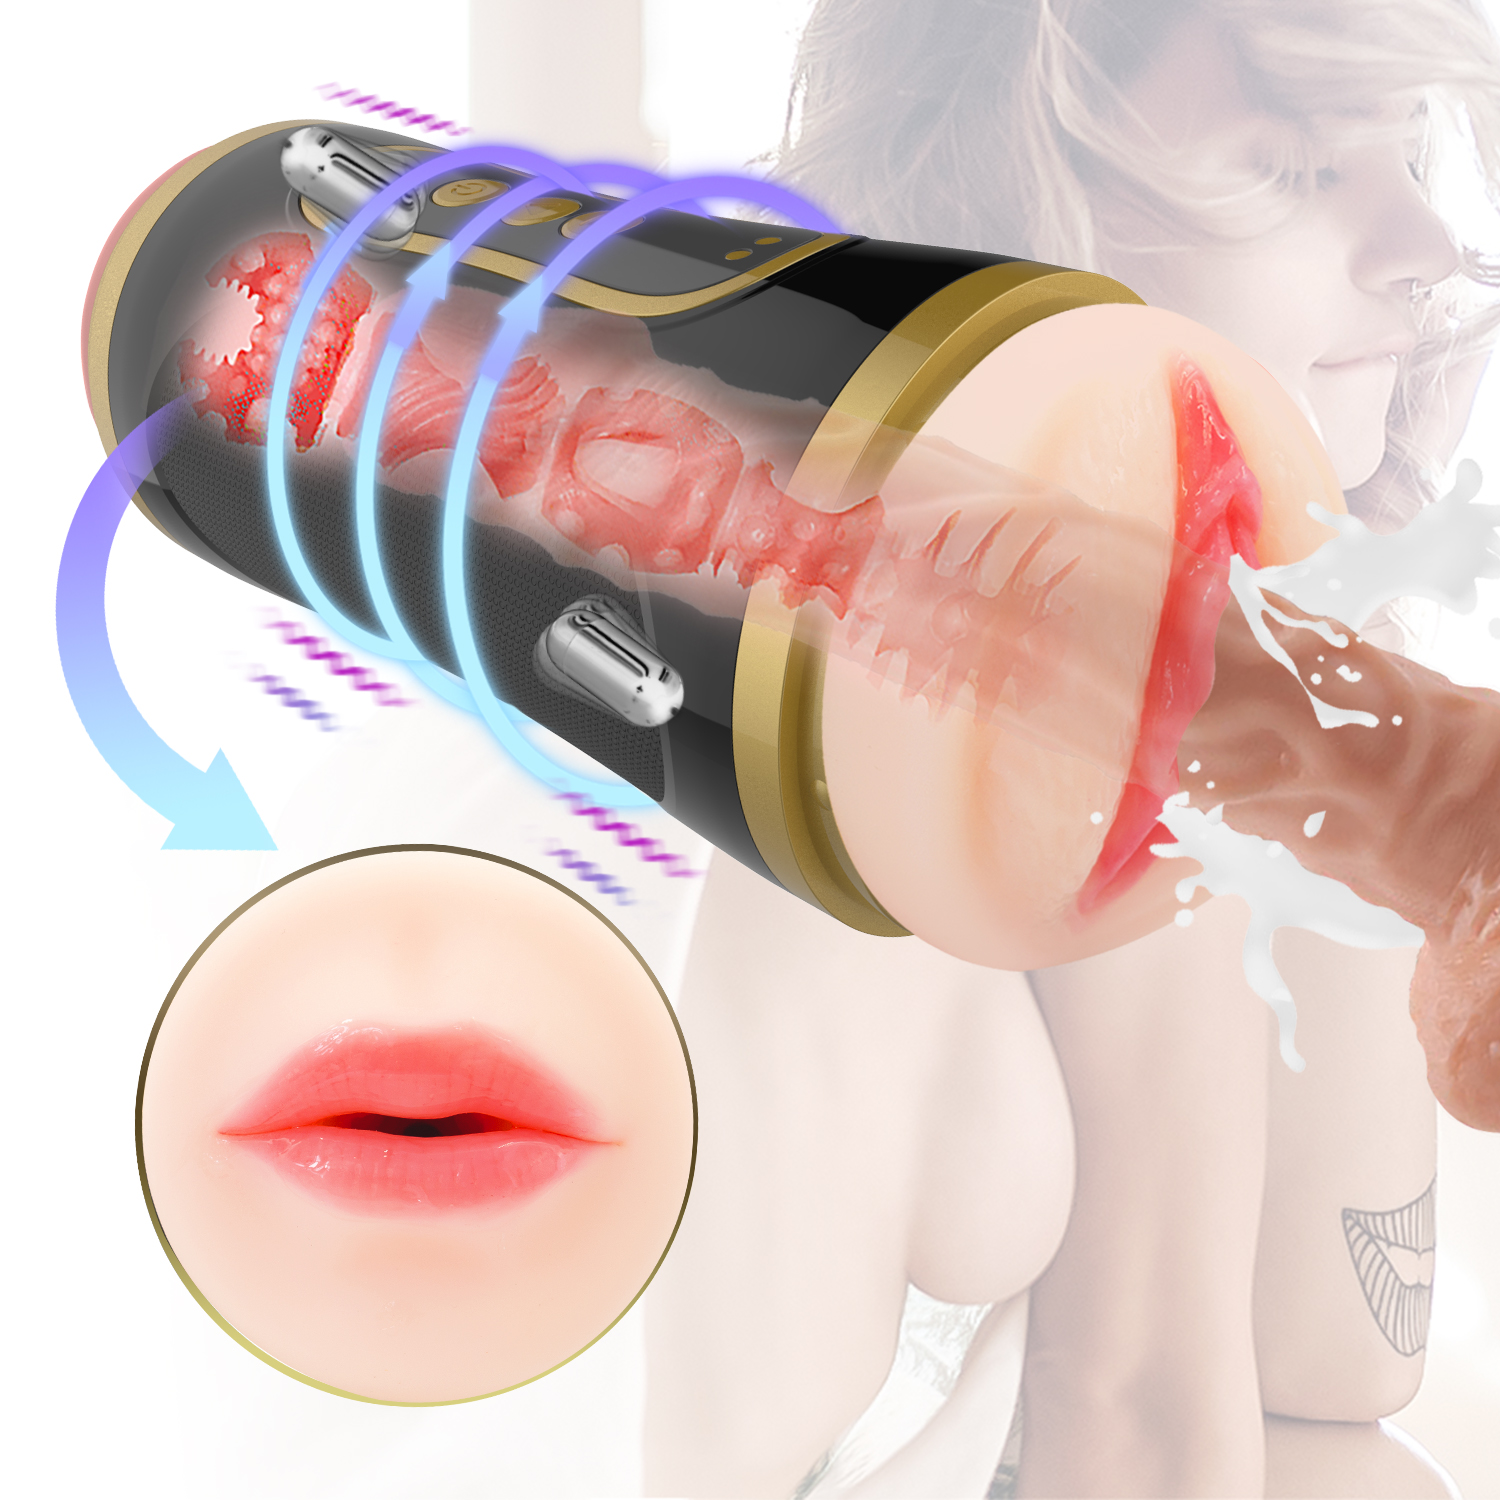 Pocket Pussy, Male Masturbators with 2-in-1 Vagina and Mouth Satisfaction, Realistic Electric Pocket Vagina Pussy with 10 Vibration Levels, Mens Sex Sexual Toy Massager for Male Men Couples